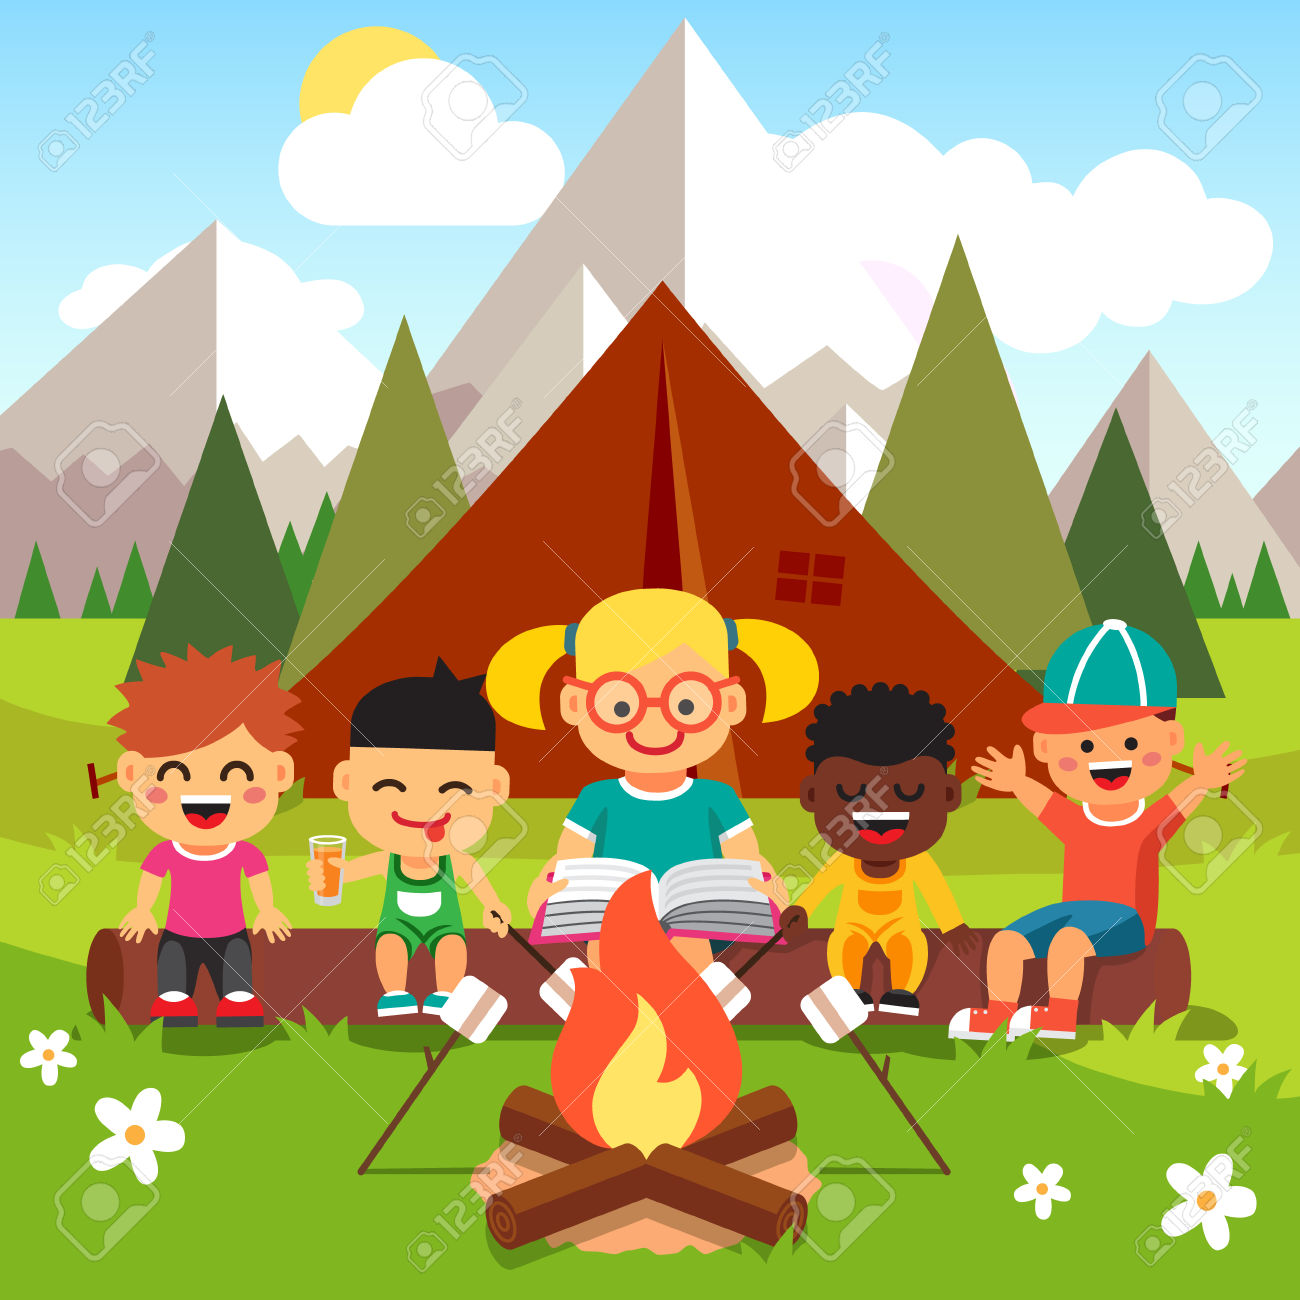 Marshmellow clipart big Free 1300x1300 with Child collection